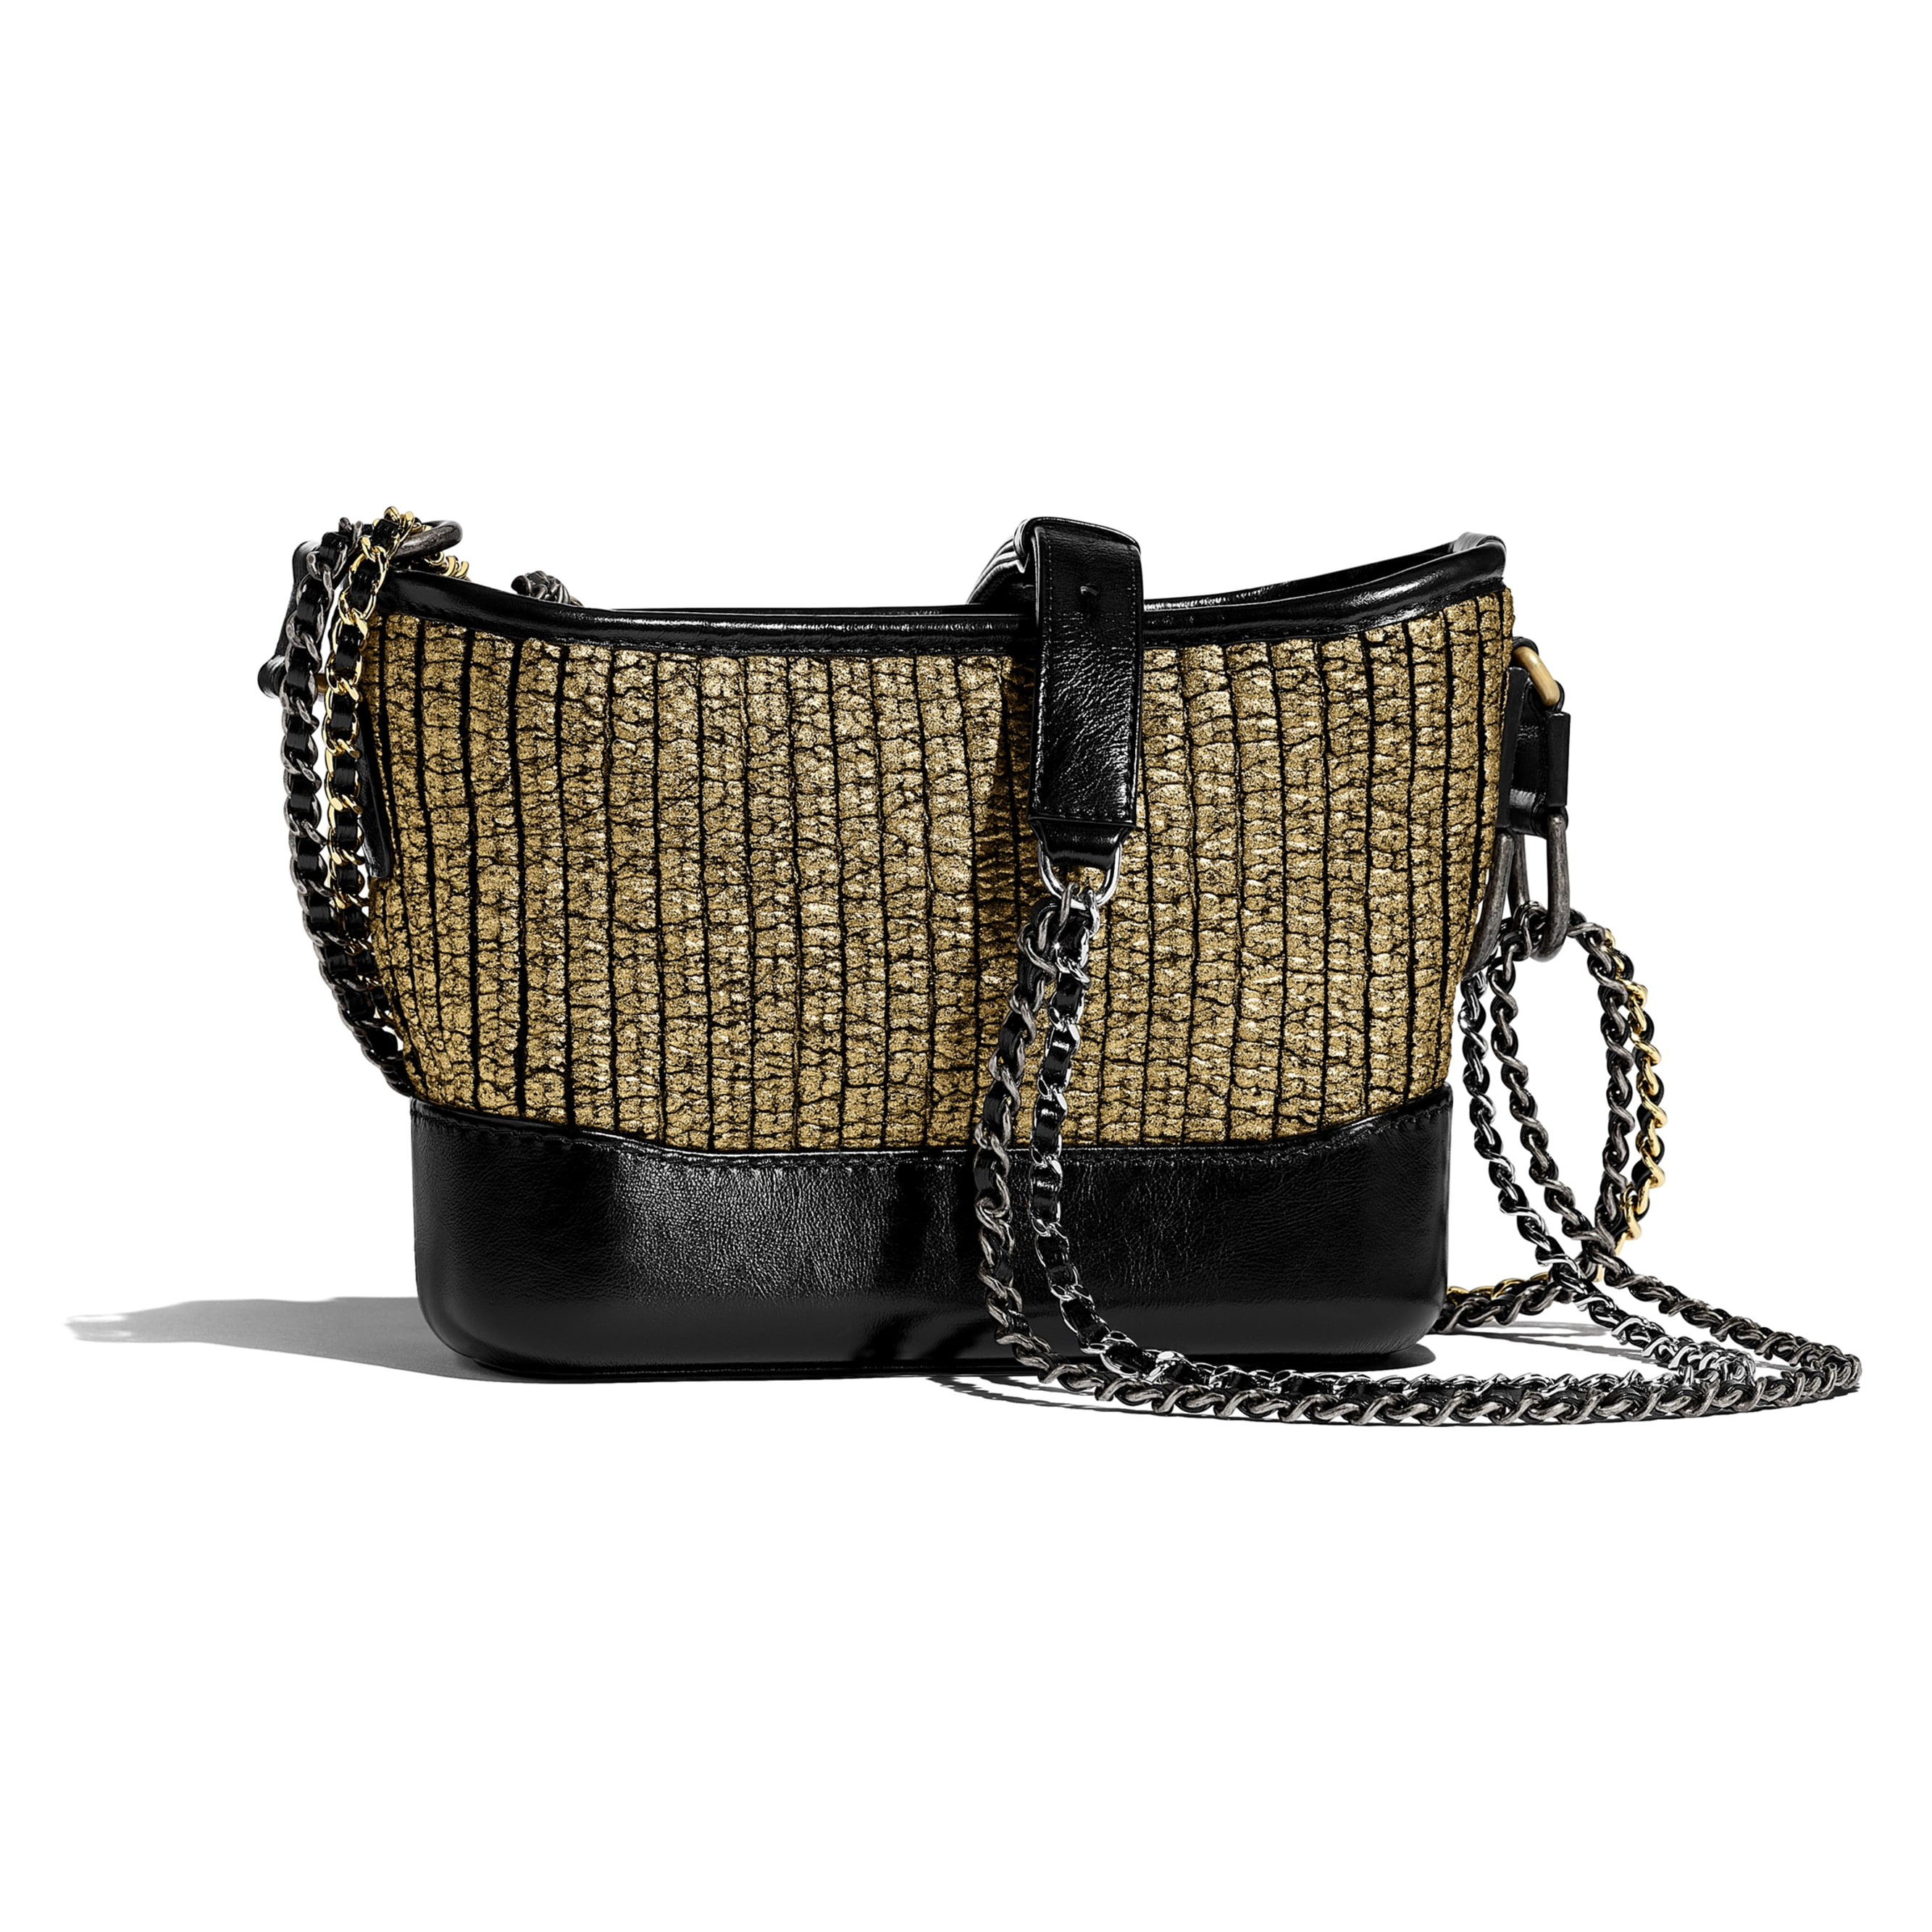 CHANEL'S GABRIELLE Small Hobo Bag - Gold & Black - Tweed, Calfskin, Gold-Tone & Silver-Tone Metal - CHANEL - Alternative view - see standard sized version